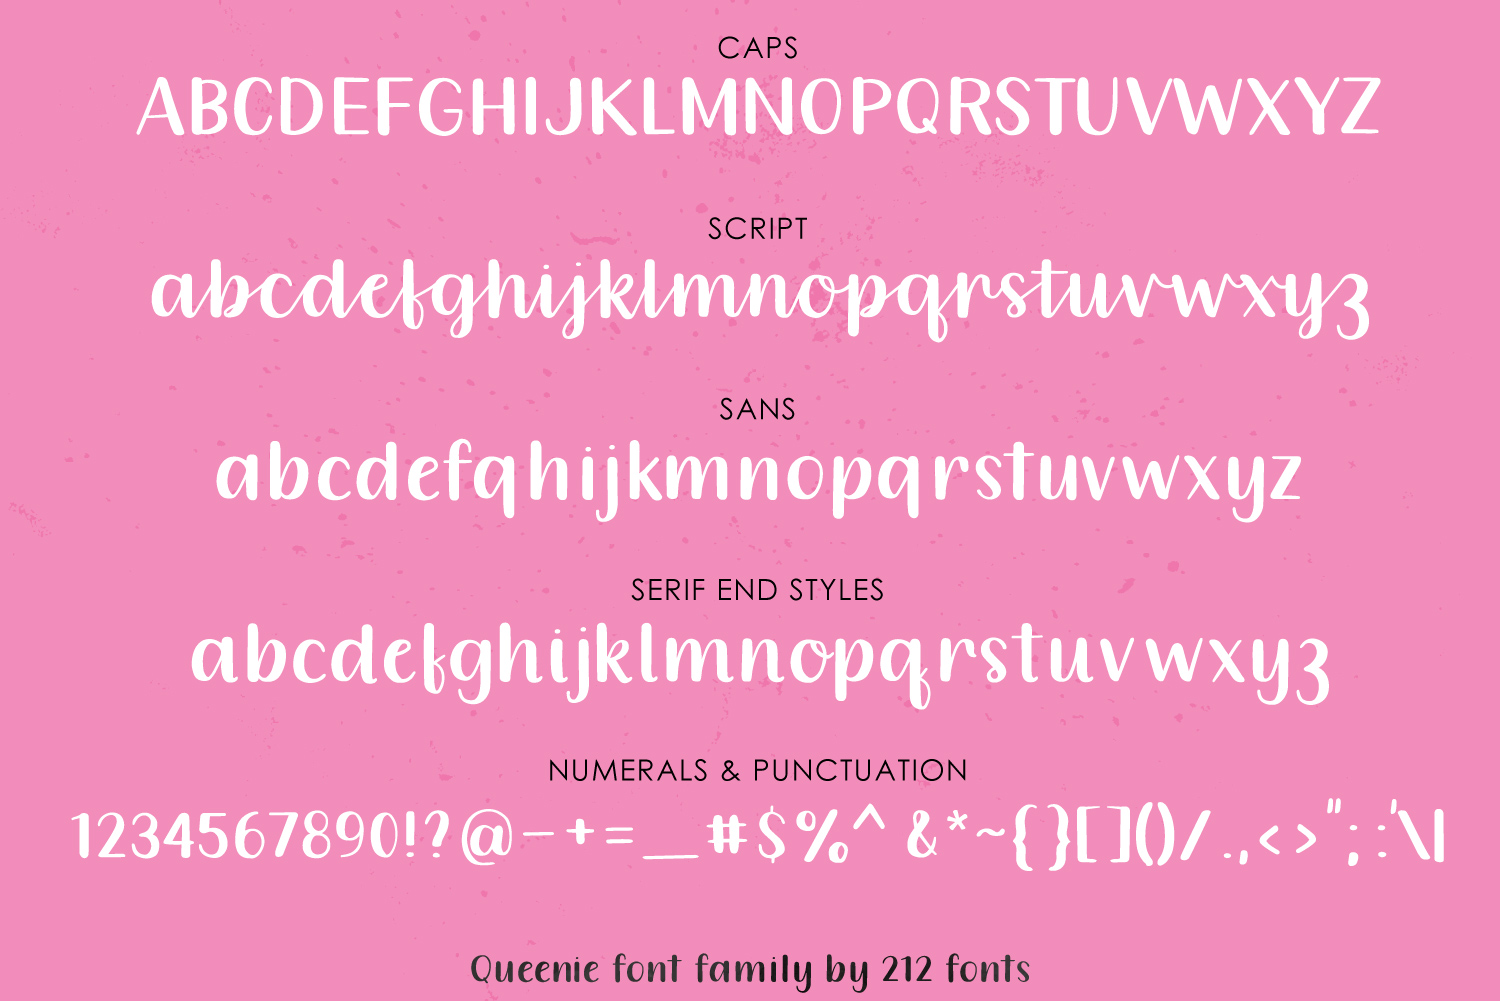 Queenie Font Family including Script, Sans, and Serif example image 3